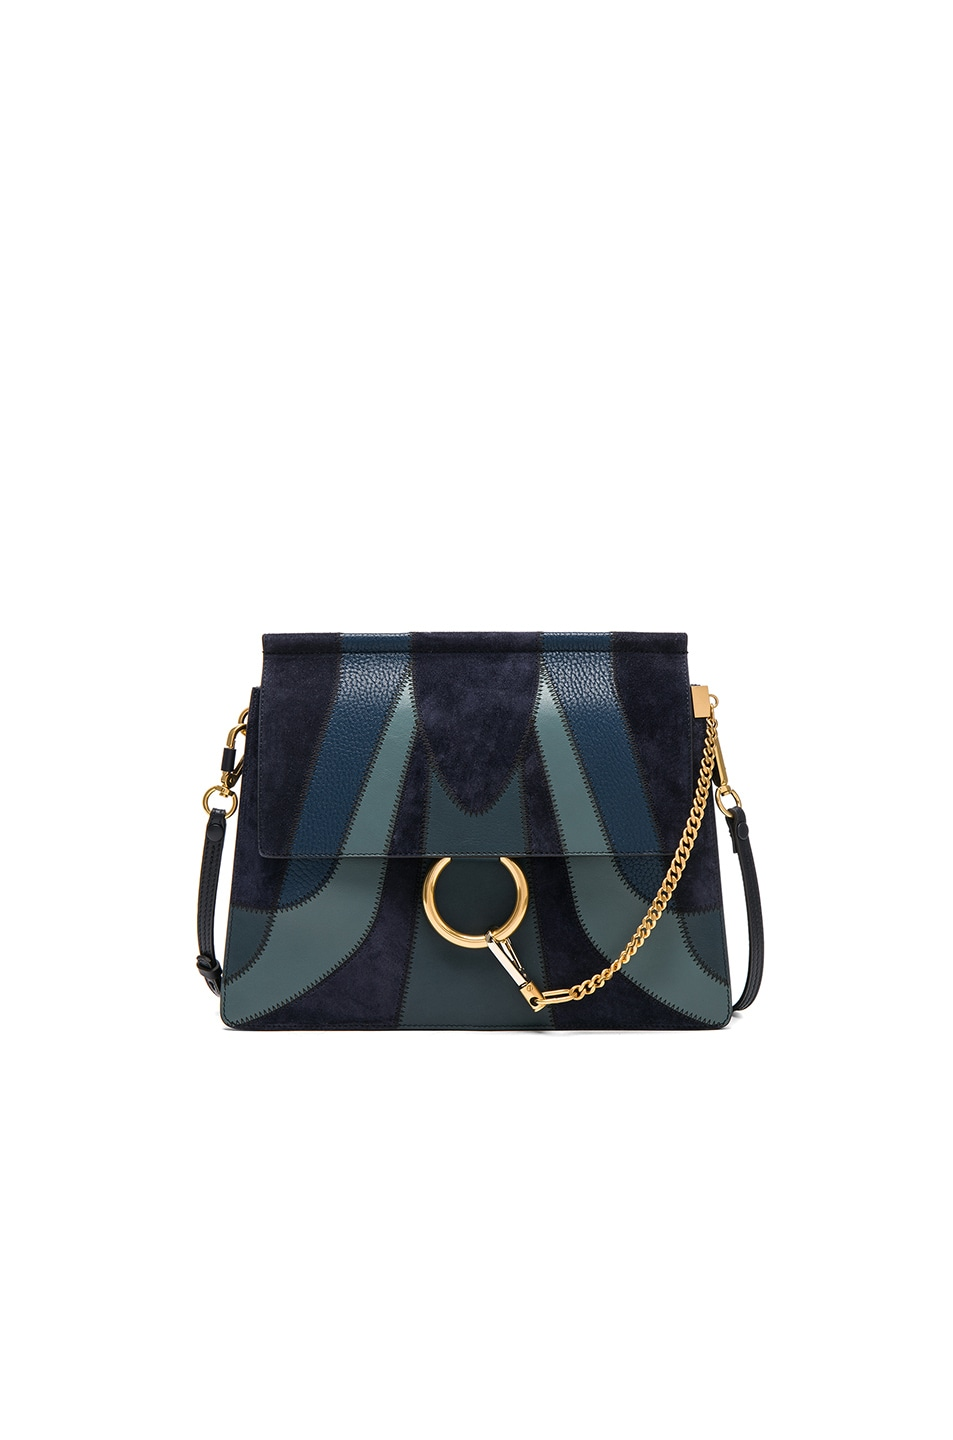 Image 1 of Chloe Medium Faye Bag in Full Blue